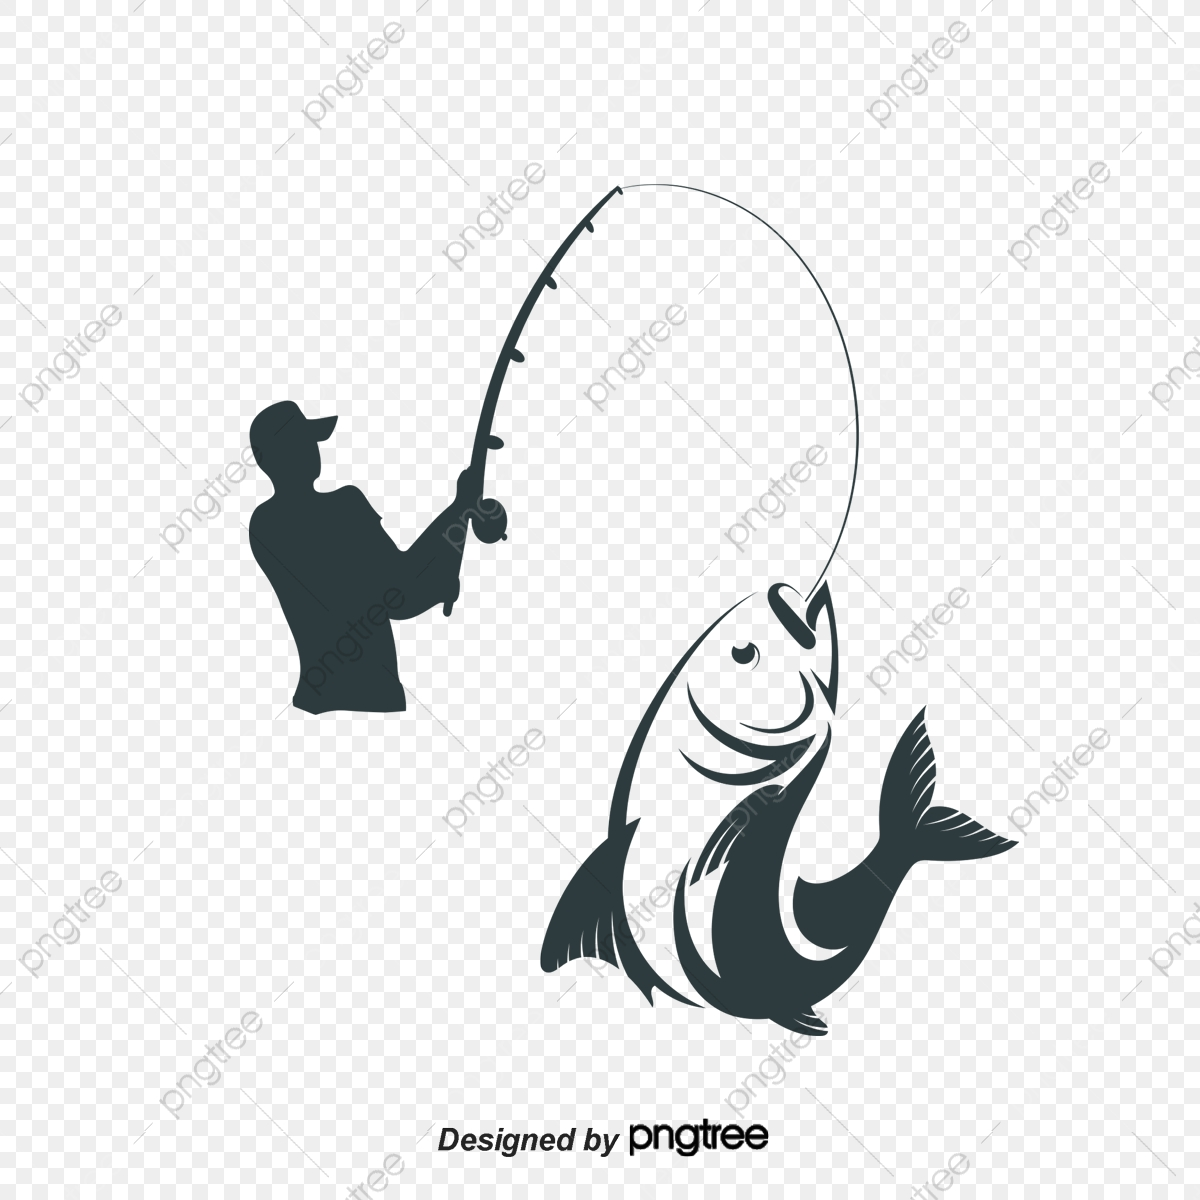 Vector People Fishing, People Vector, People Clipart, Fishing PNG.